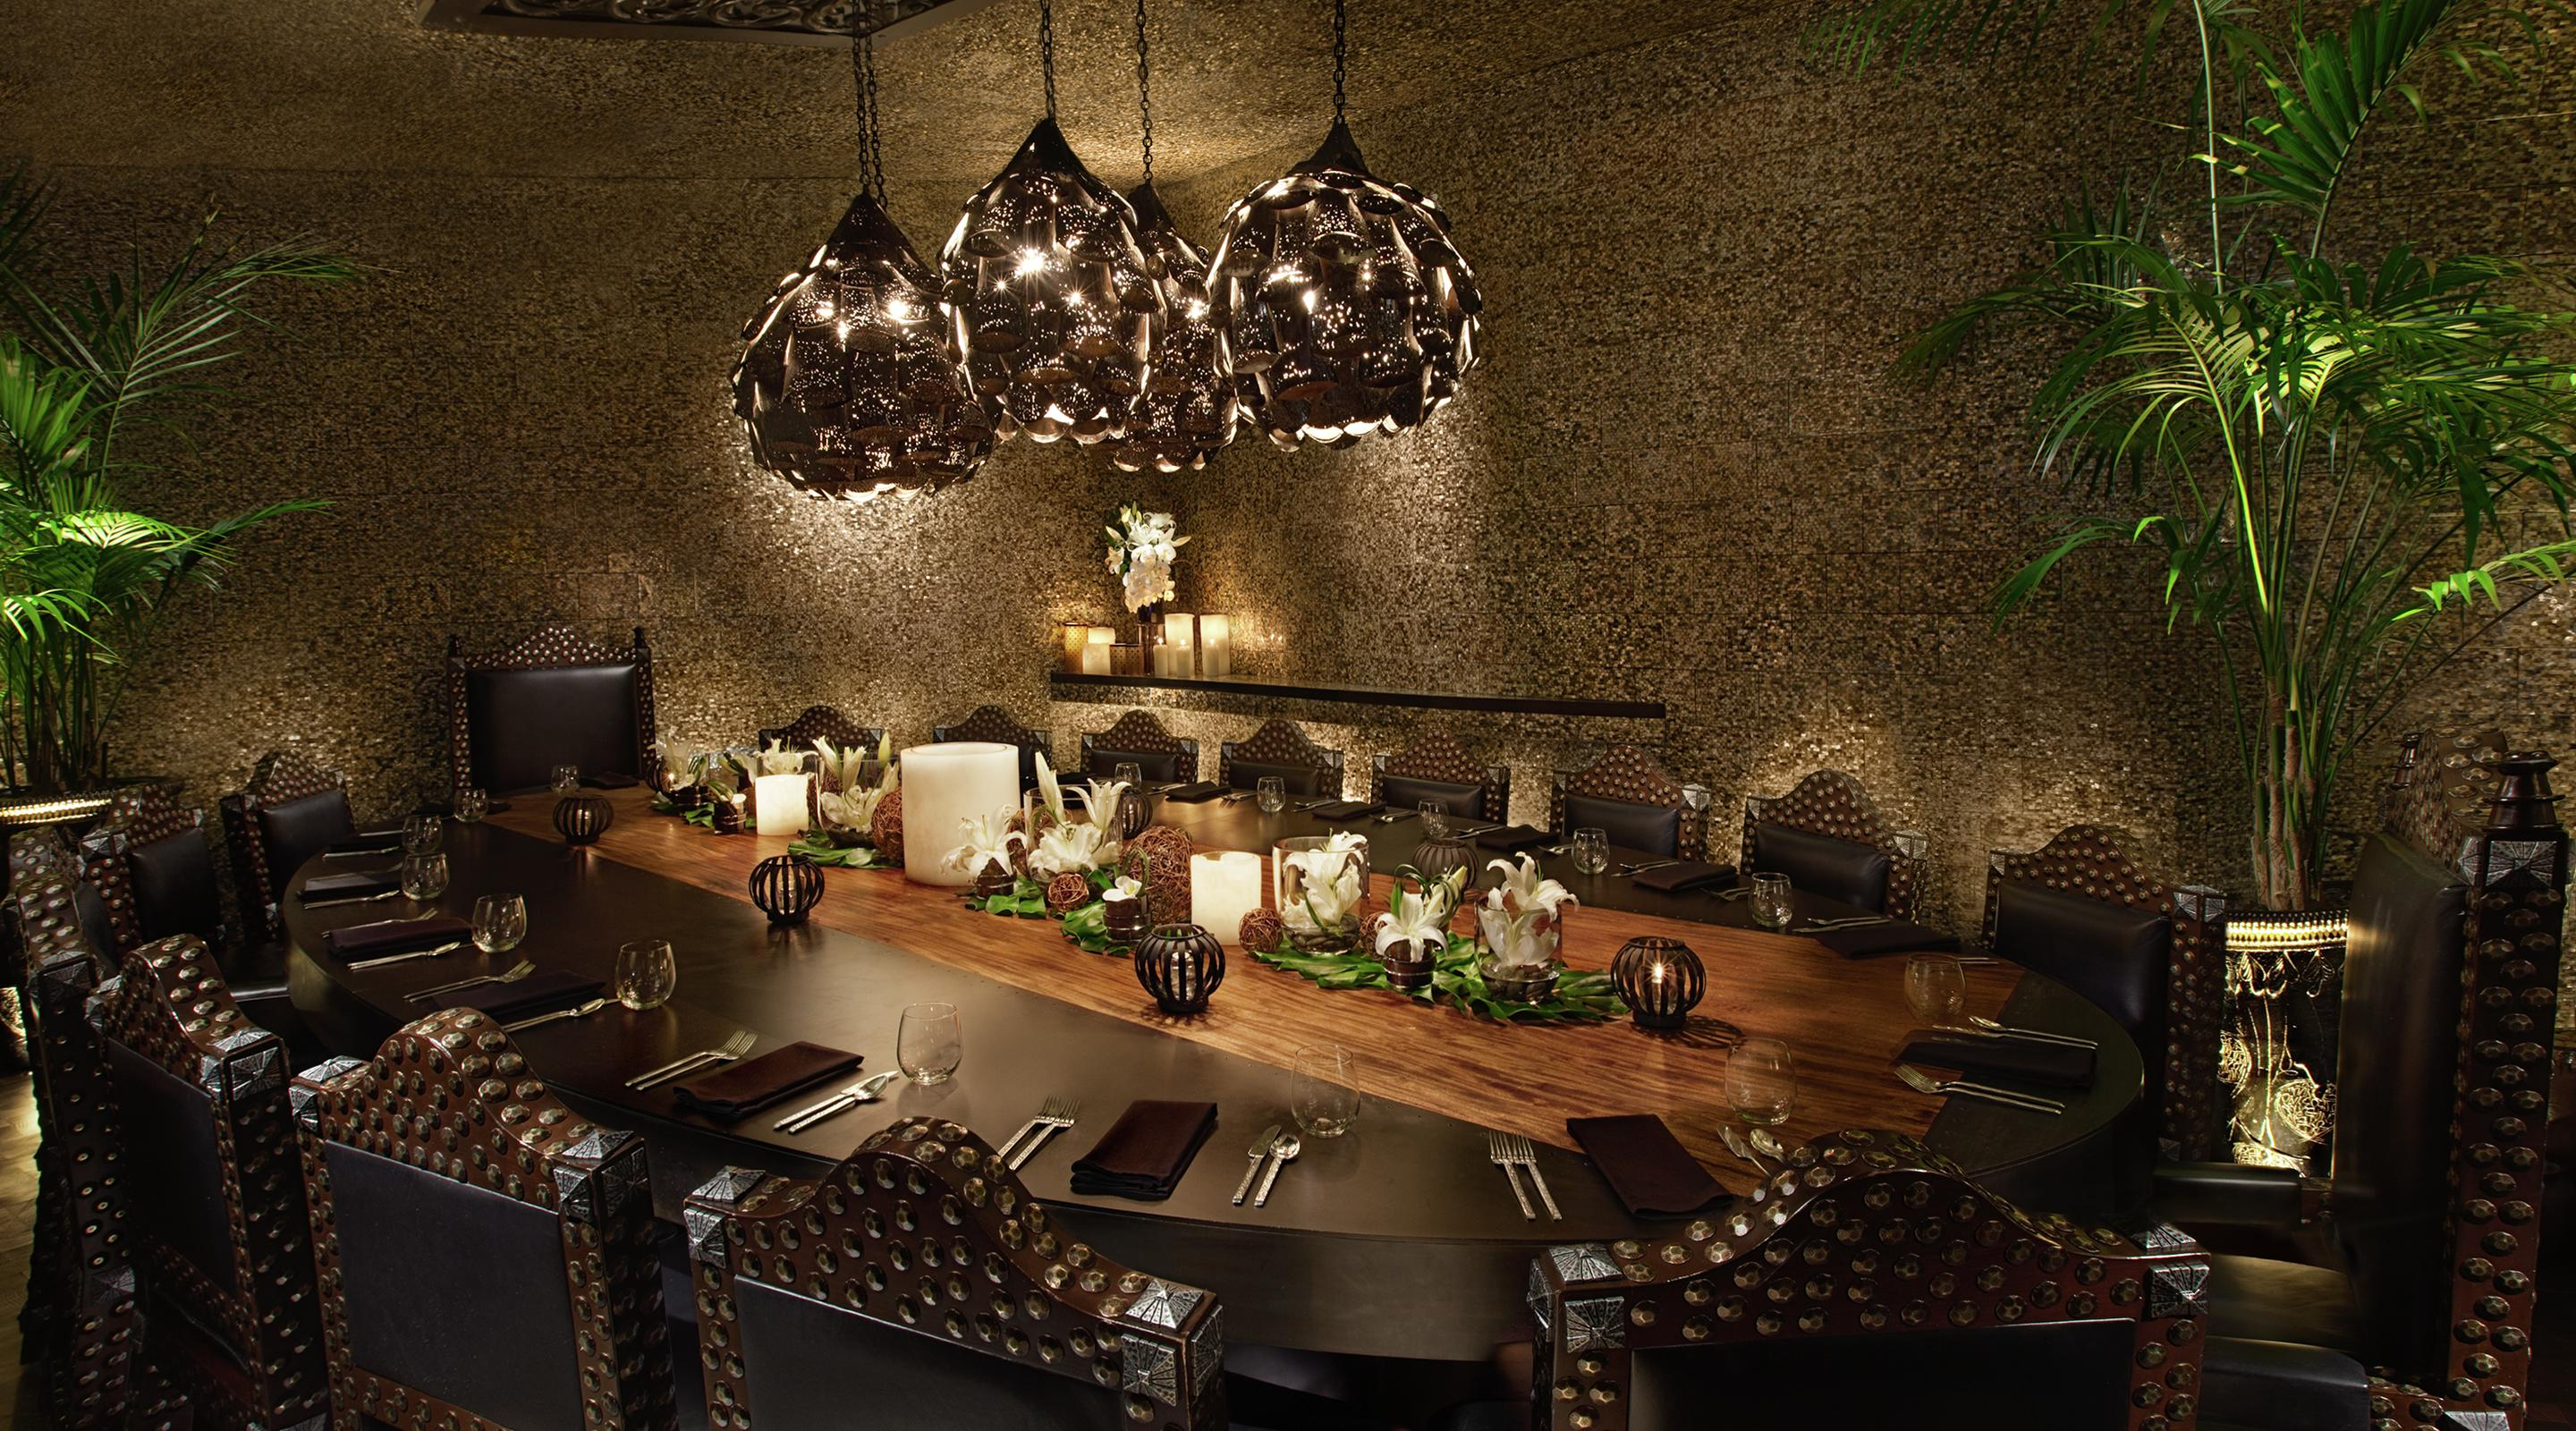 Enjoy Baja specials including selections of seafood, beef, pork, chicken and vegetarian dishes both at the exquisite bar surrounded by dozens of the world's finest tequilas and in the main dining room featuring a chainsaw wood carving highlighting the Aztec civilization.